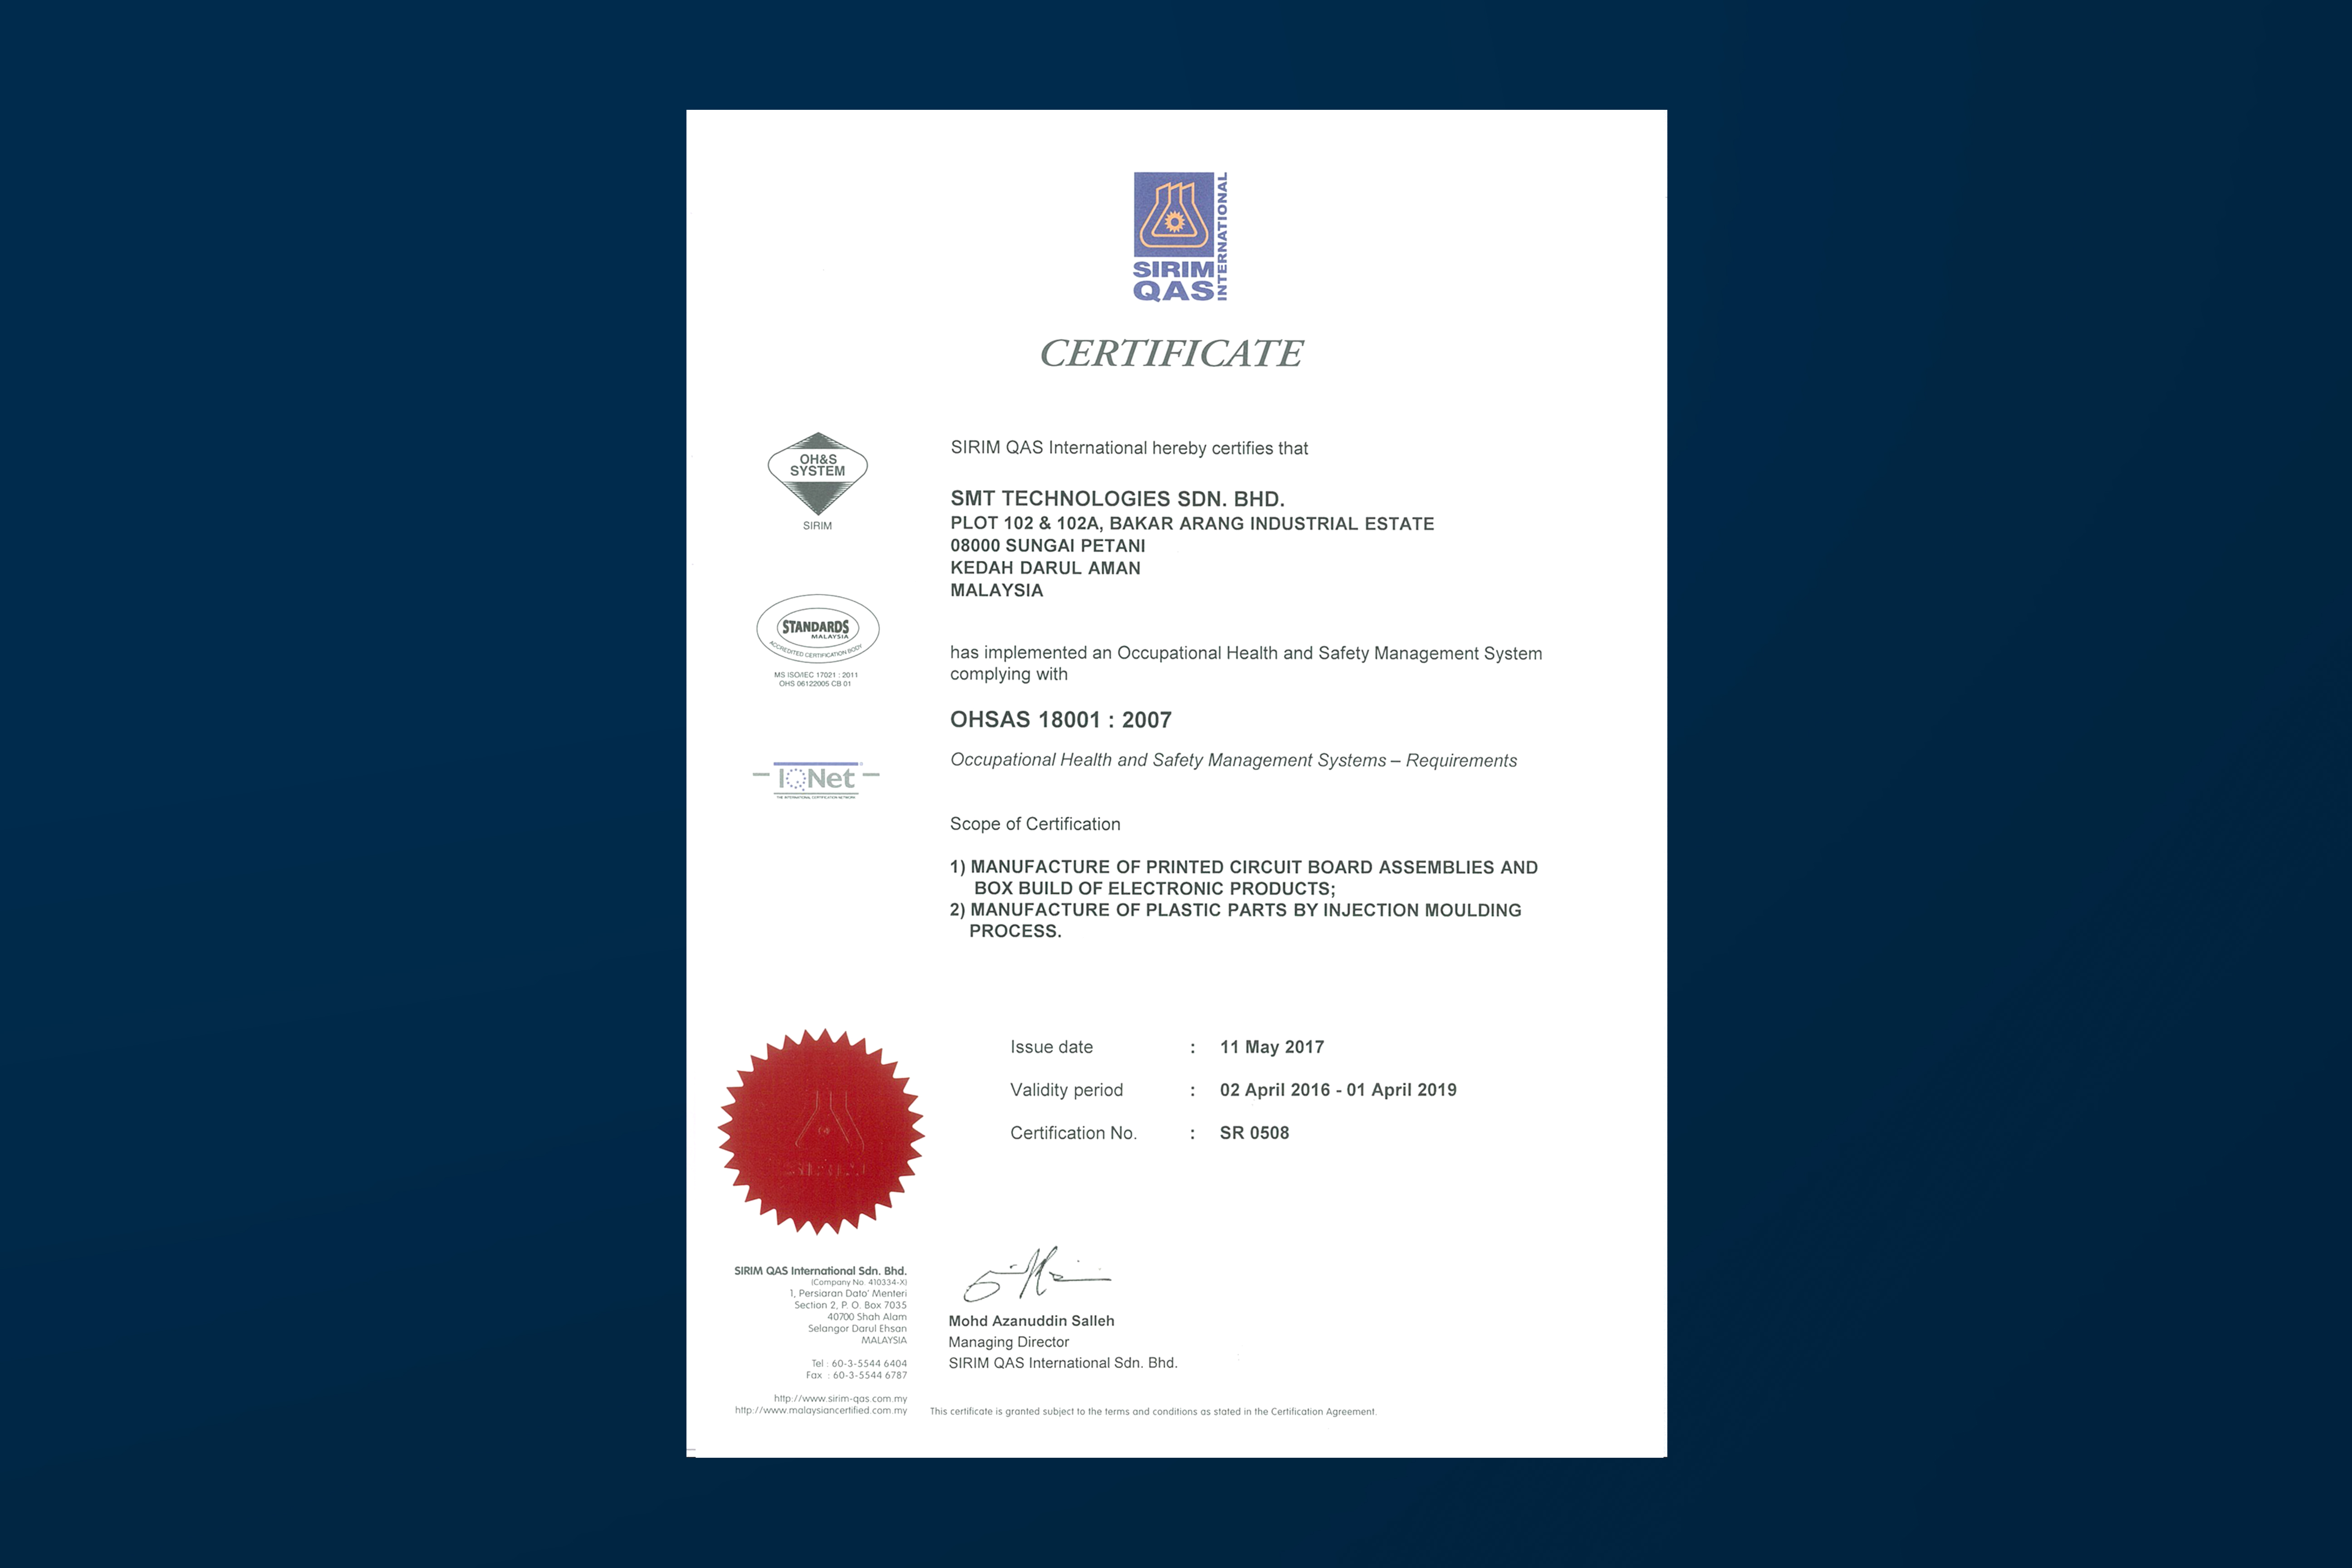 Certificate Printed Circuit Board Assembly Box Build Ohsas 18001 2007 Scope Of Certification 1 Manufacture Assemblies And